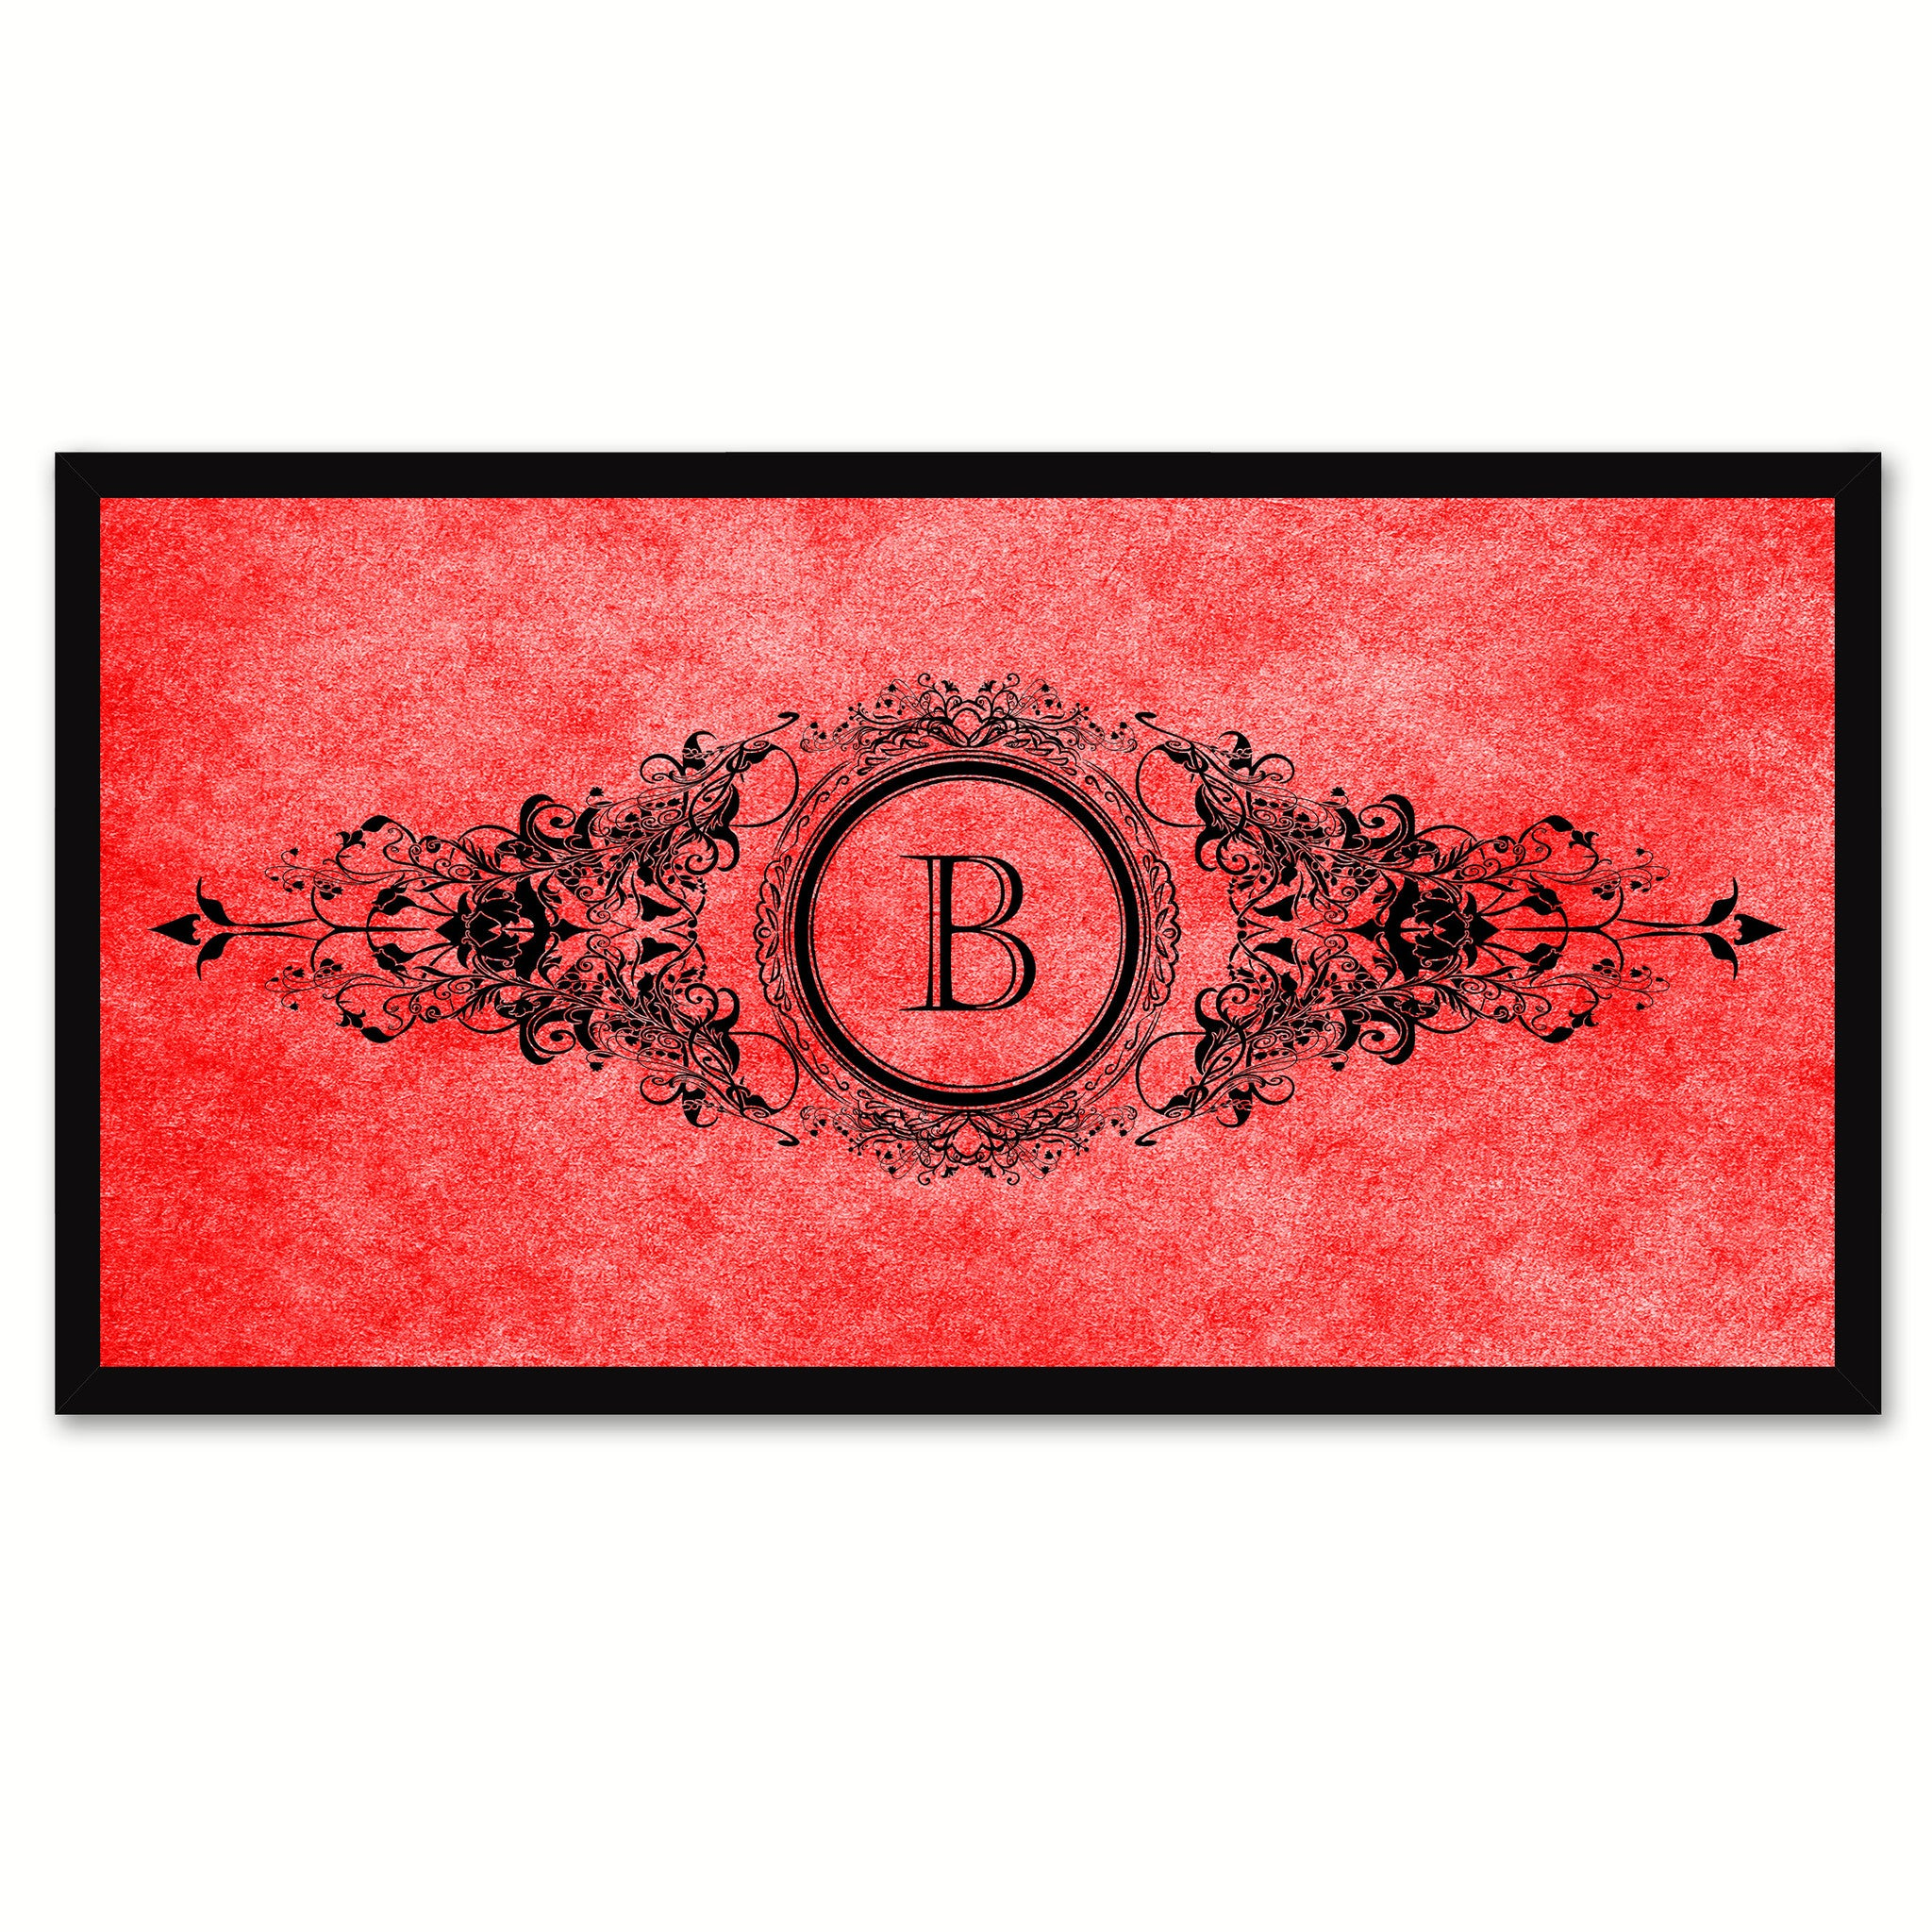 Alphabet Letter B Red Canvas Print Black Frame Kids Bedroom Wall Décor Home Art